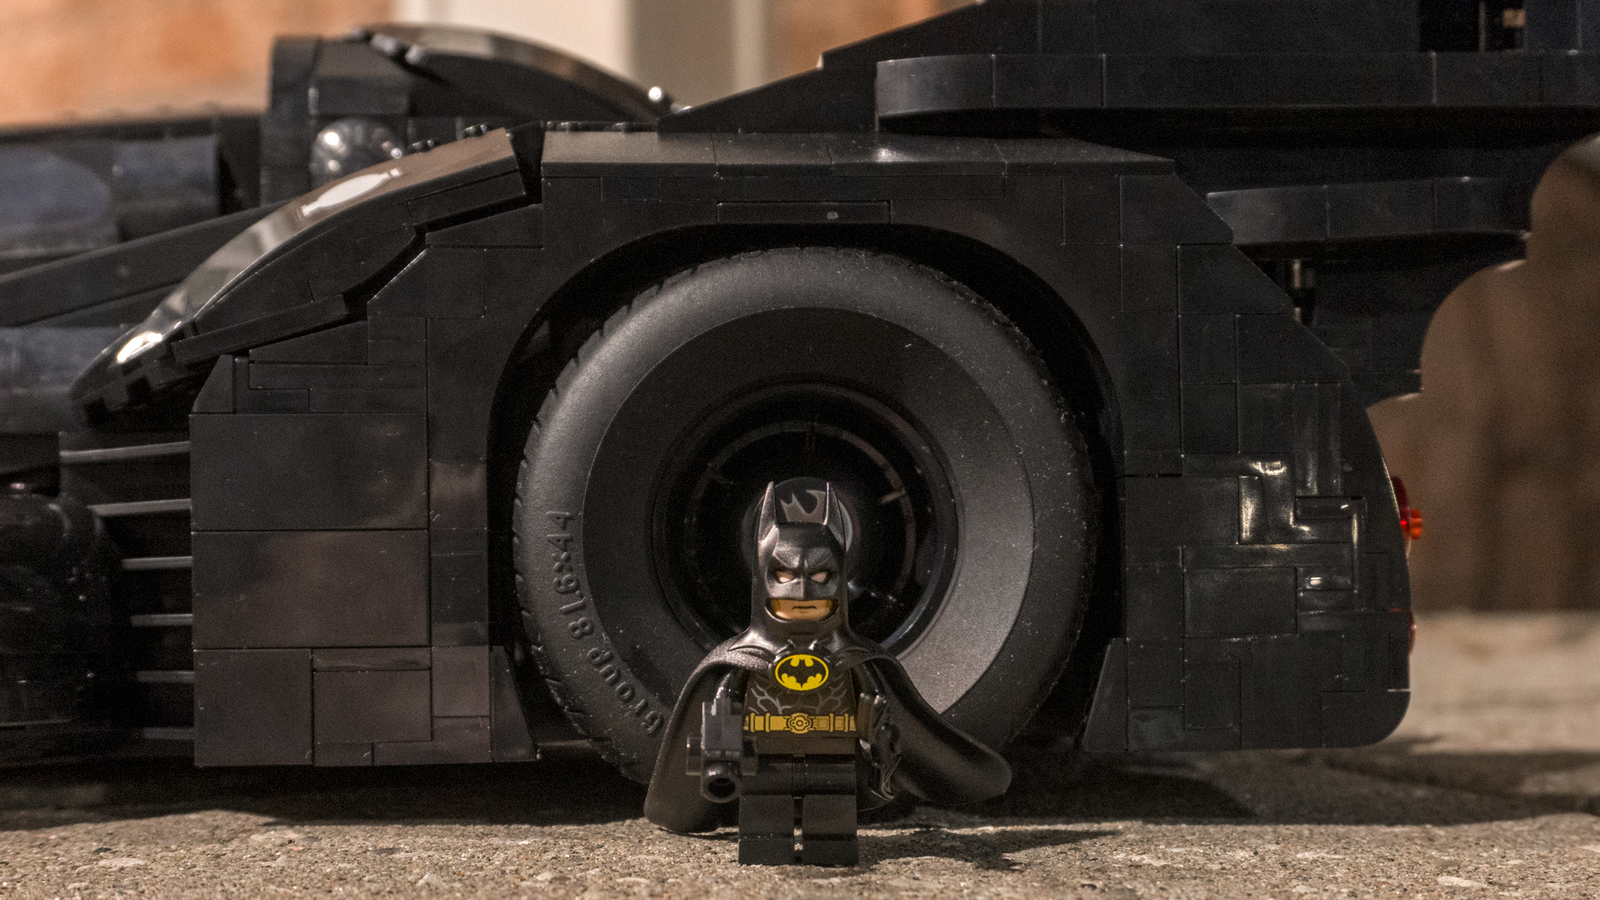 So just how large is this model? The Batmobile's back tires are twice as tall as the included Lego Batman minifigure. It's massive.